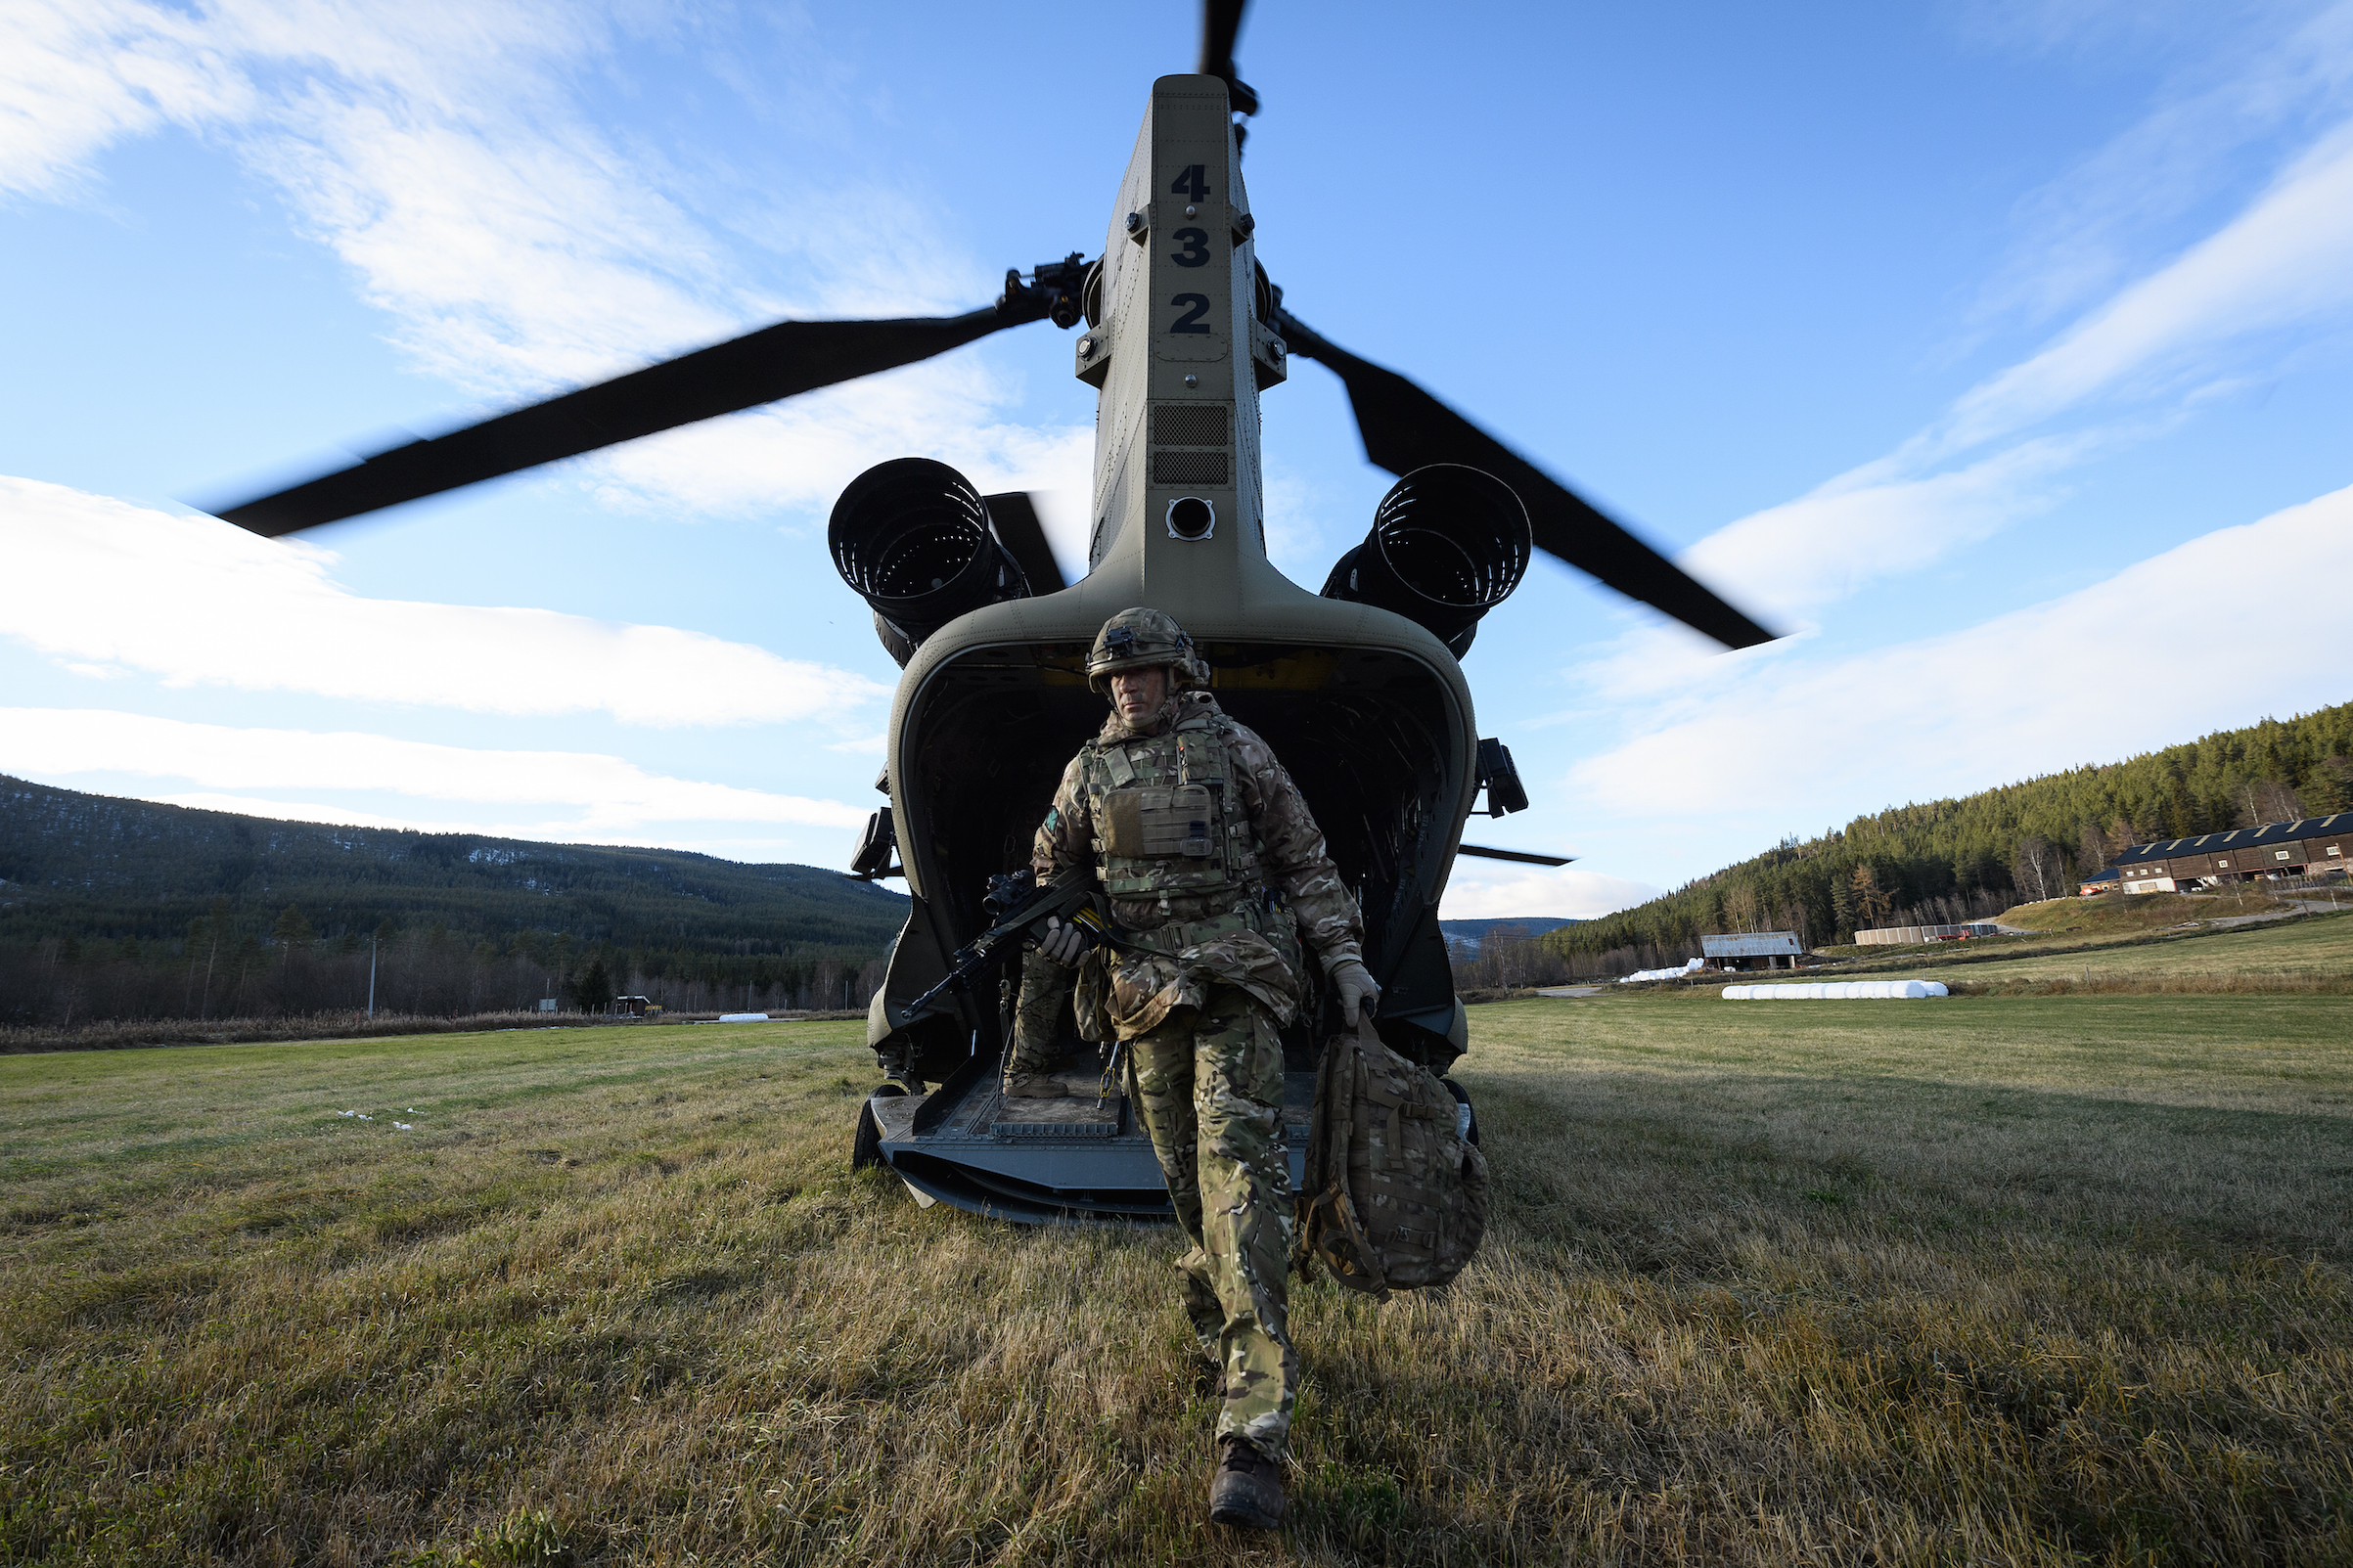 A British Army Brigade Commander disembarks from a United States Army Chinook CH-47 helicopter during a reconnaissance mission ahead of live exercise, on Oct. 27, 2018 in Alvdal, Norway. Over 40,000 participants from 31 nations will take part in the NATO  Trident Juncture  exercise, the largest exercise of it's kind to be held in Norway since the 1980s.